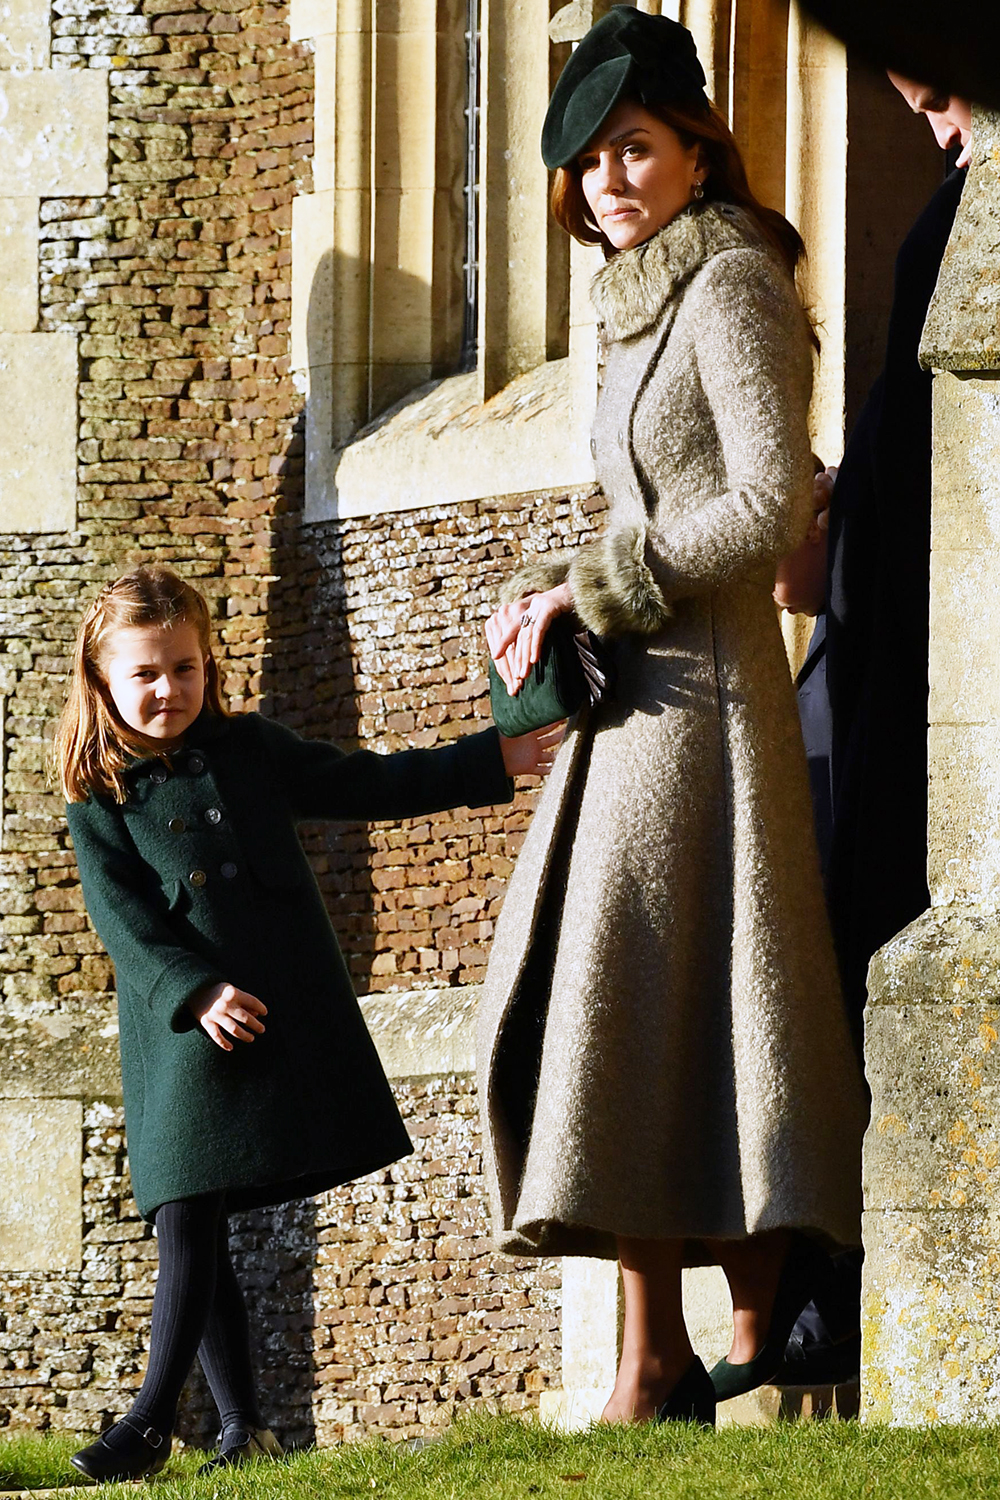 Britain's Princess Charlotte of Cambridge (L) and Britain's Catherine, Duchess of Cambridge leave after the Royal Family's traditional Christmas Day service at St Mary Magdalene Church in Sandringham, Norfolk, eastern England, on December 25, 2019. (Photo by Ben STANSALL / AFP) (Photo by BEN STANSALL/AFP via Getty Images)